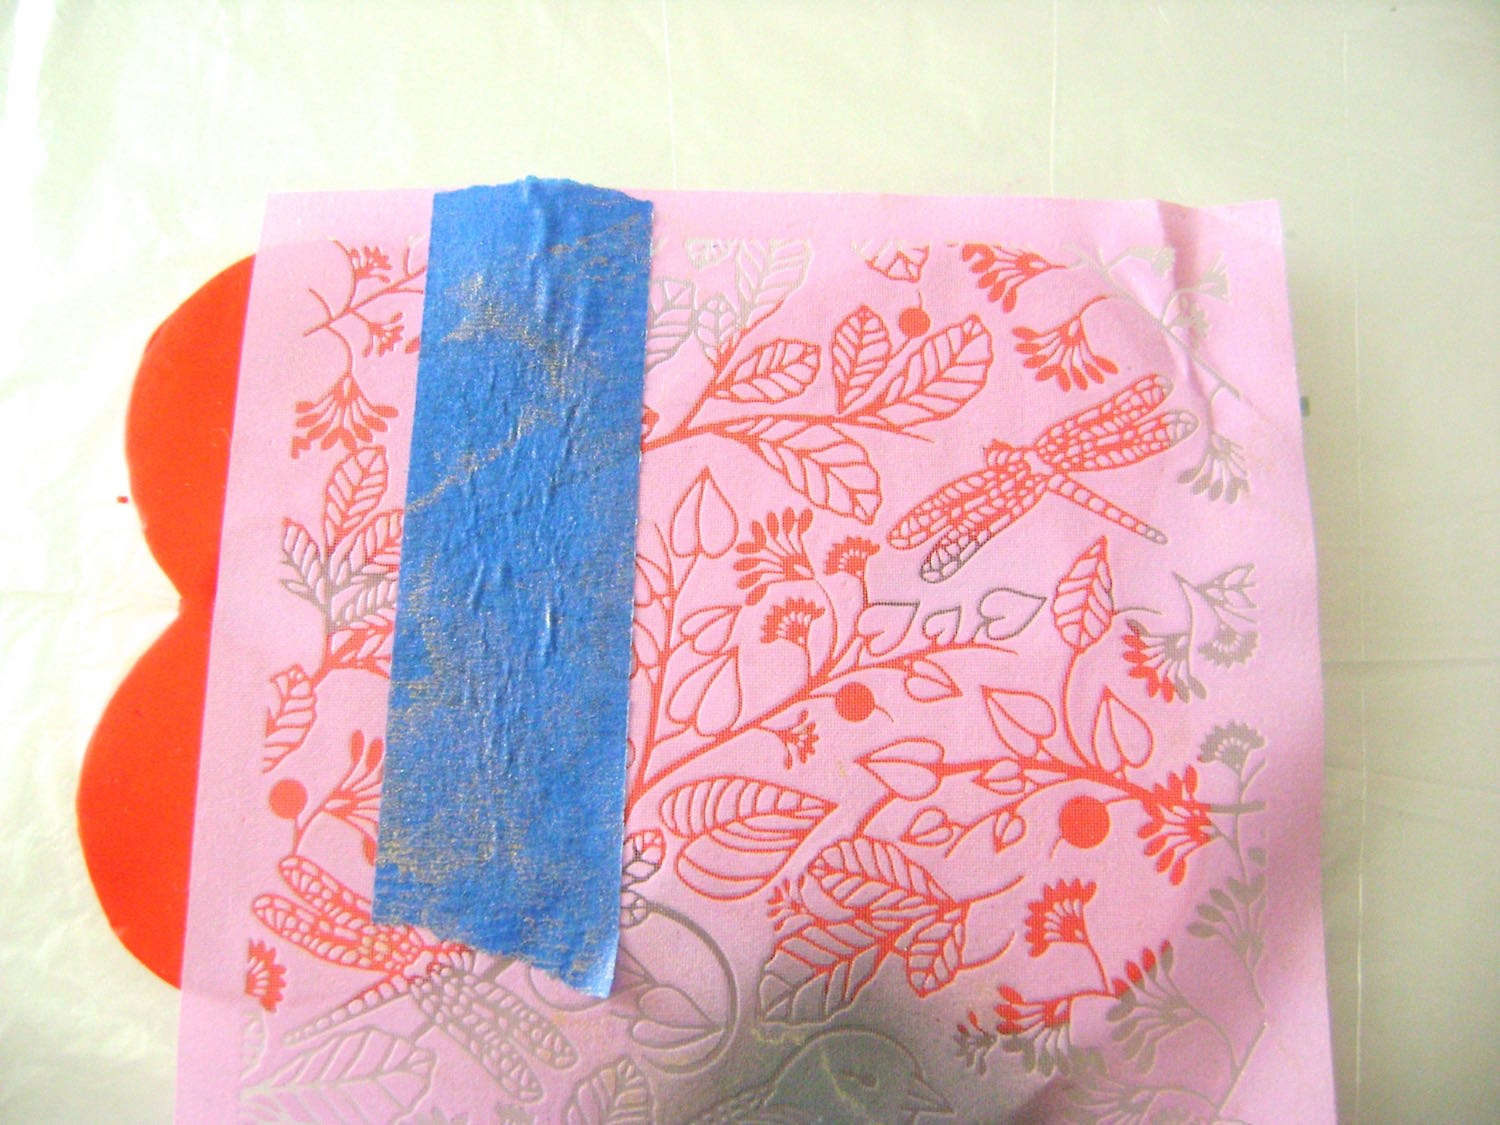 step 4 - Lay the silkscreen shiny side down over the clay. Place tape on the silkscreen to mark the center of the cuff.